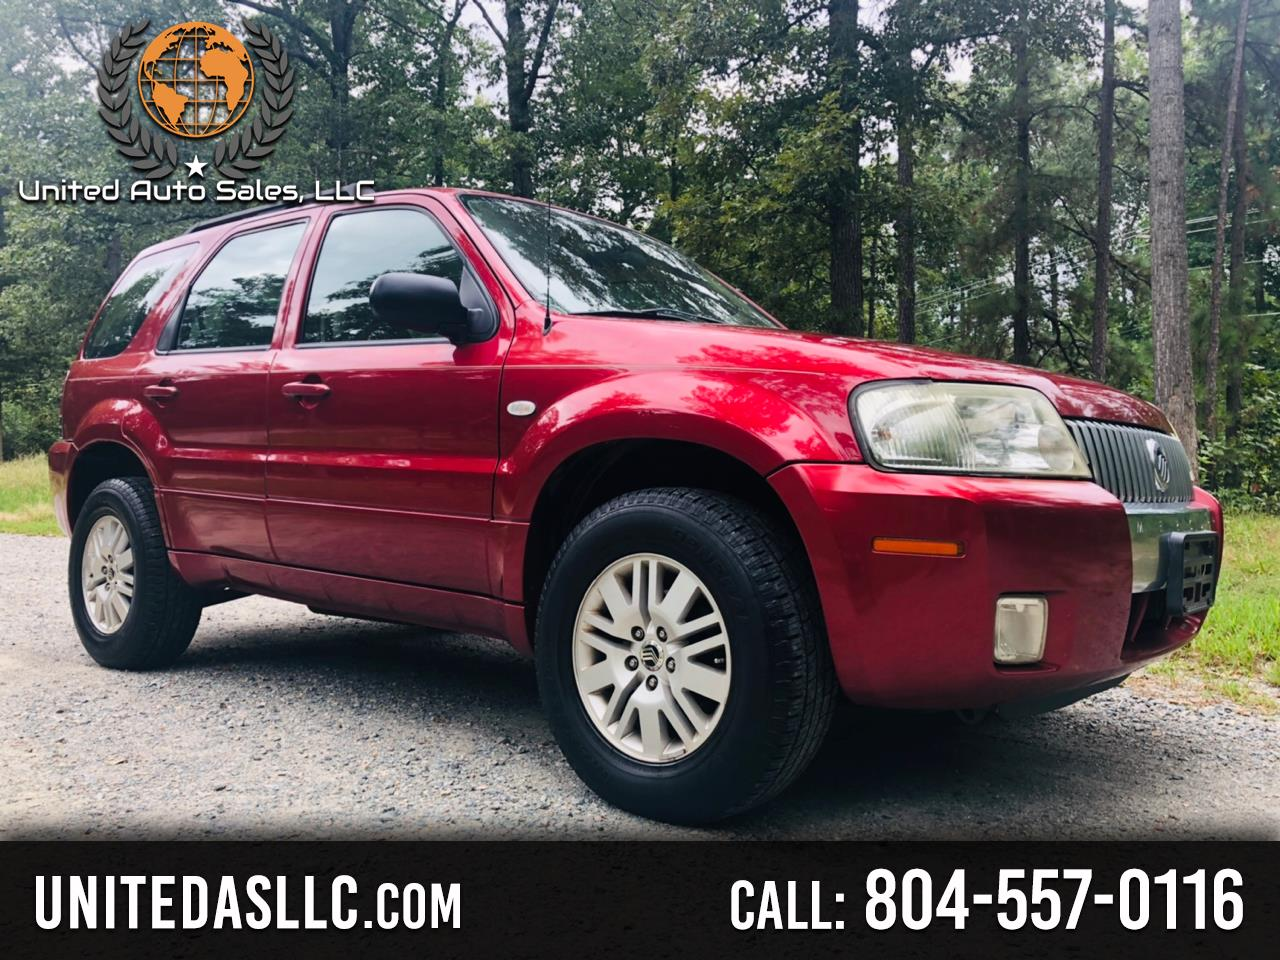 2005 Mercury Mariner Convenience 2WD